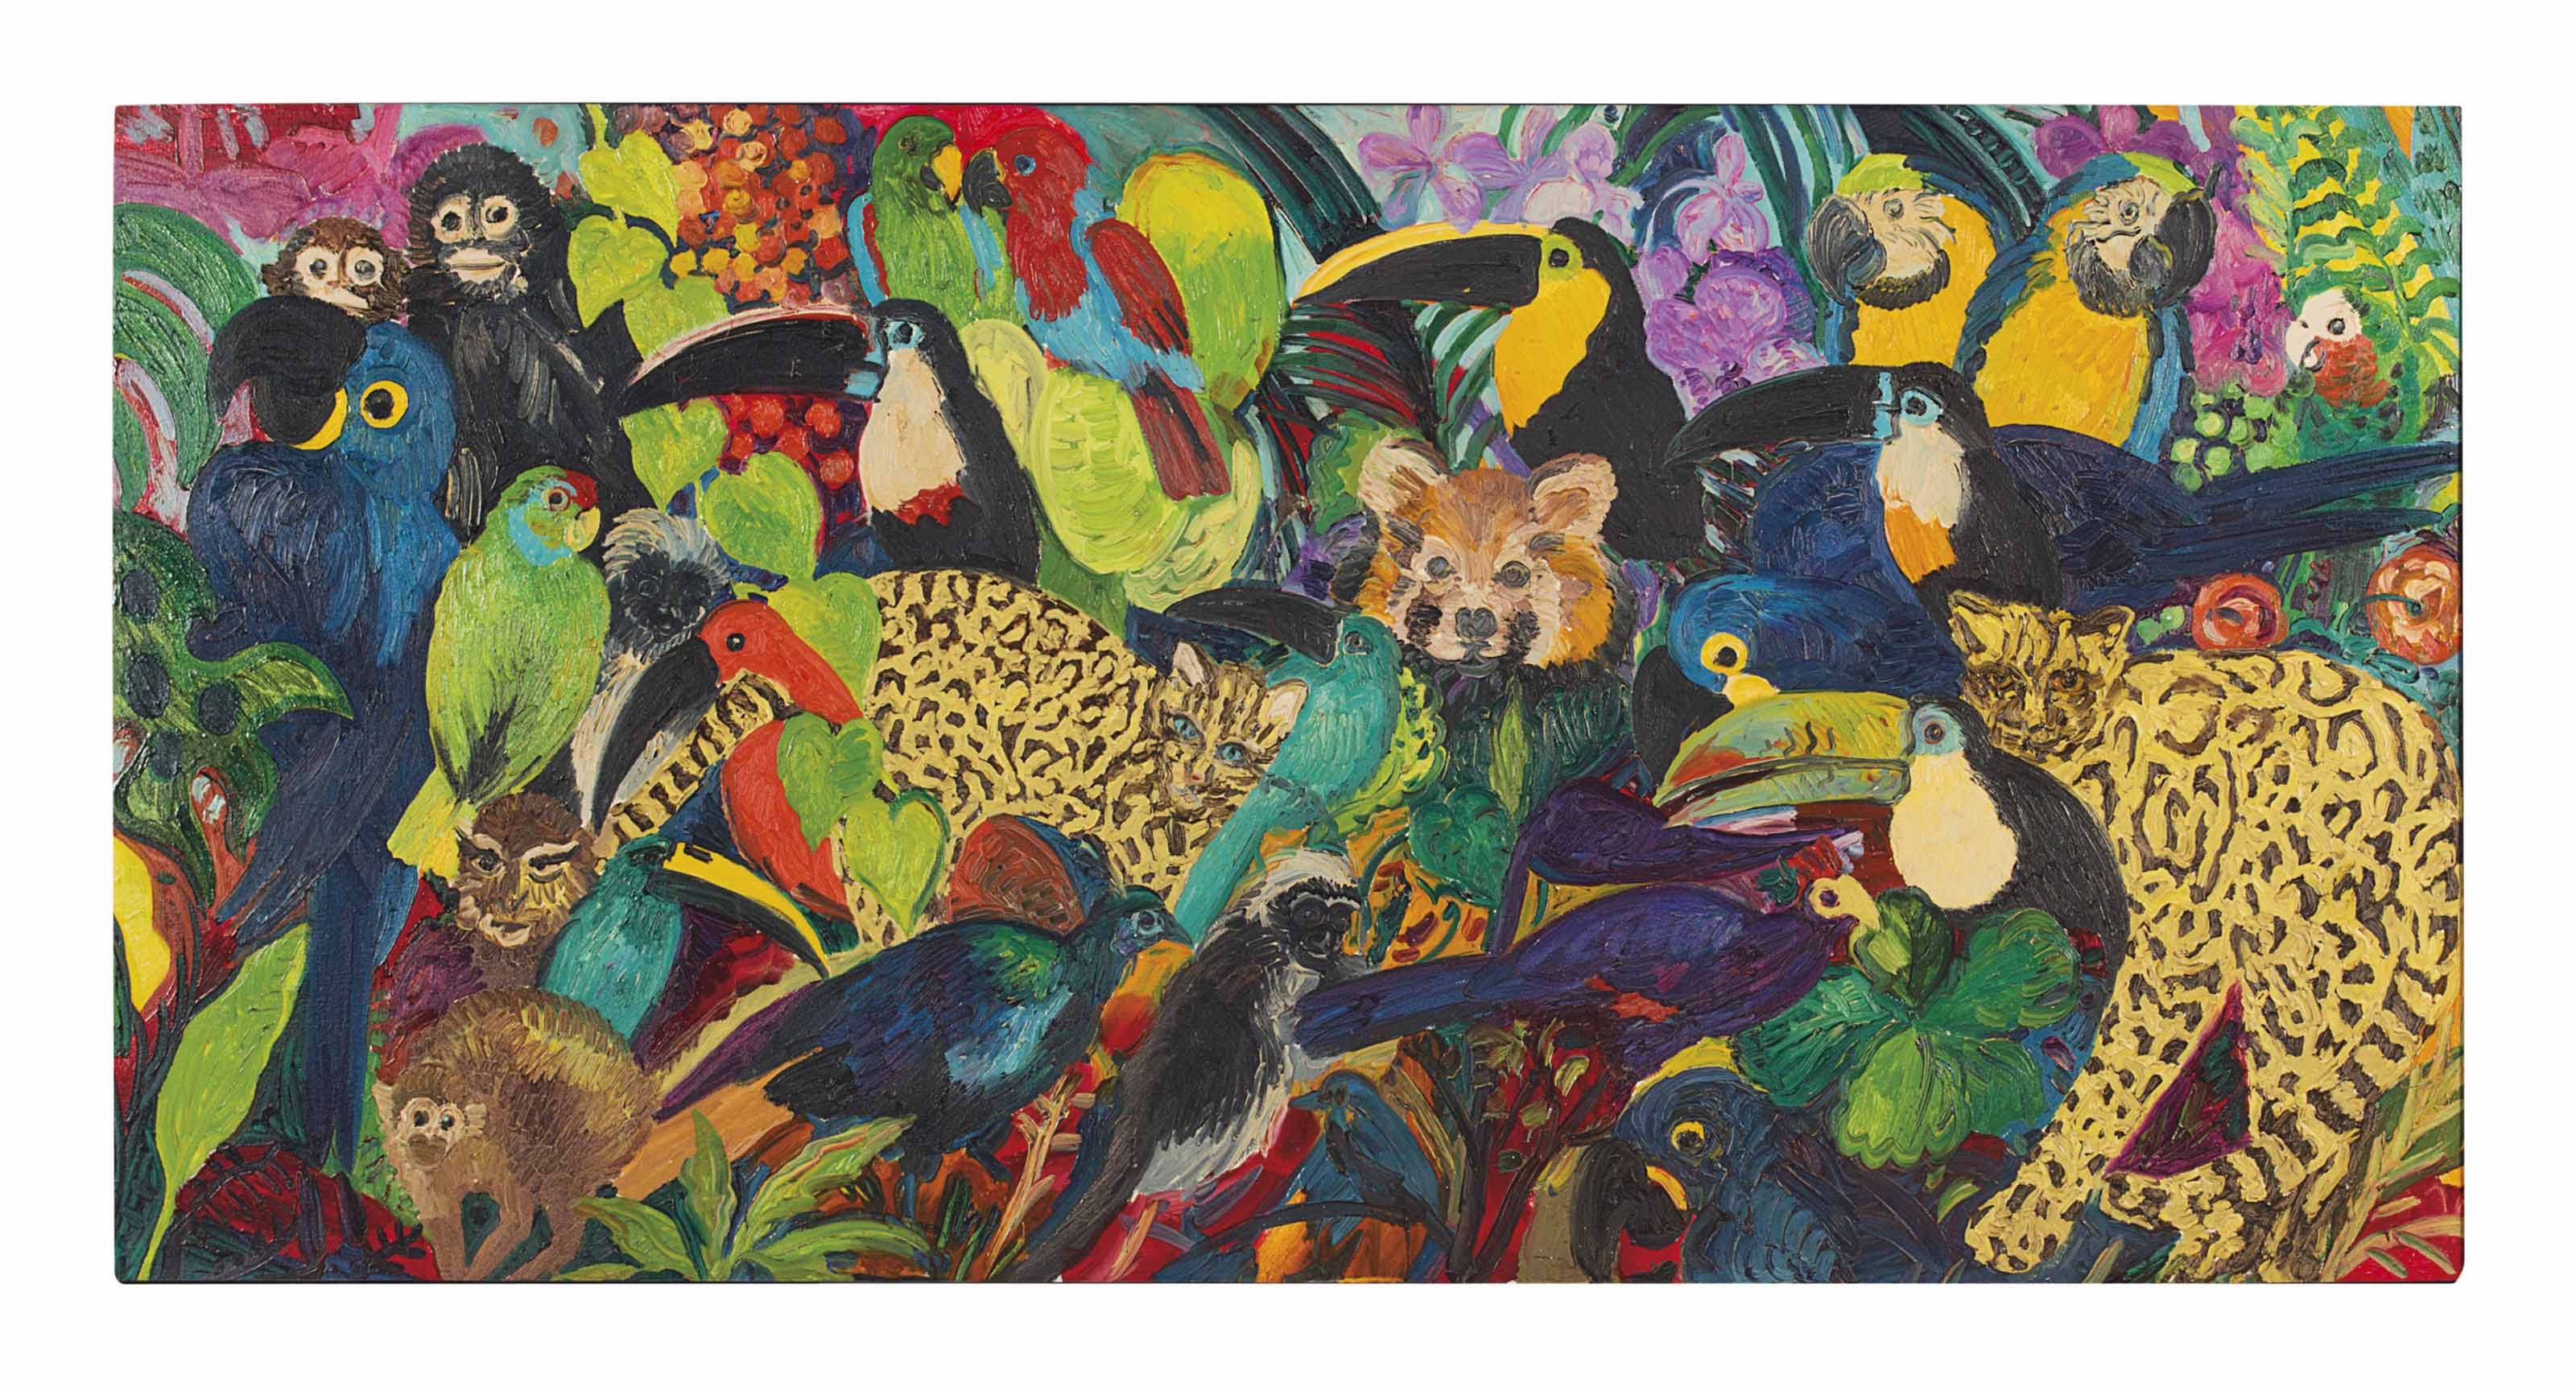 Untitled (toucans, parrots, monkeys, ocelots and red panda)